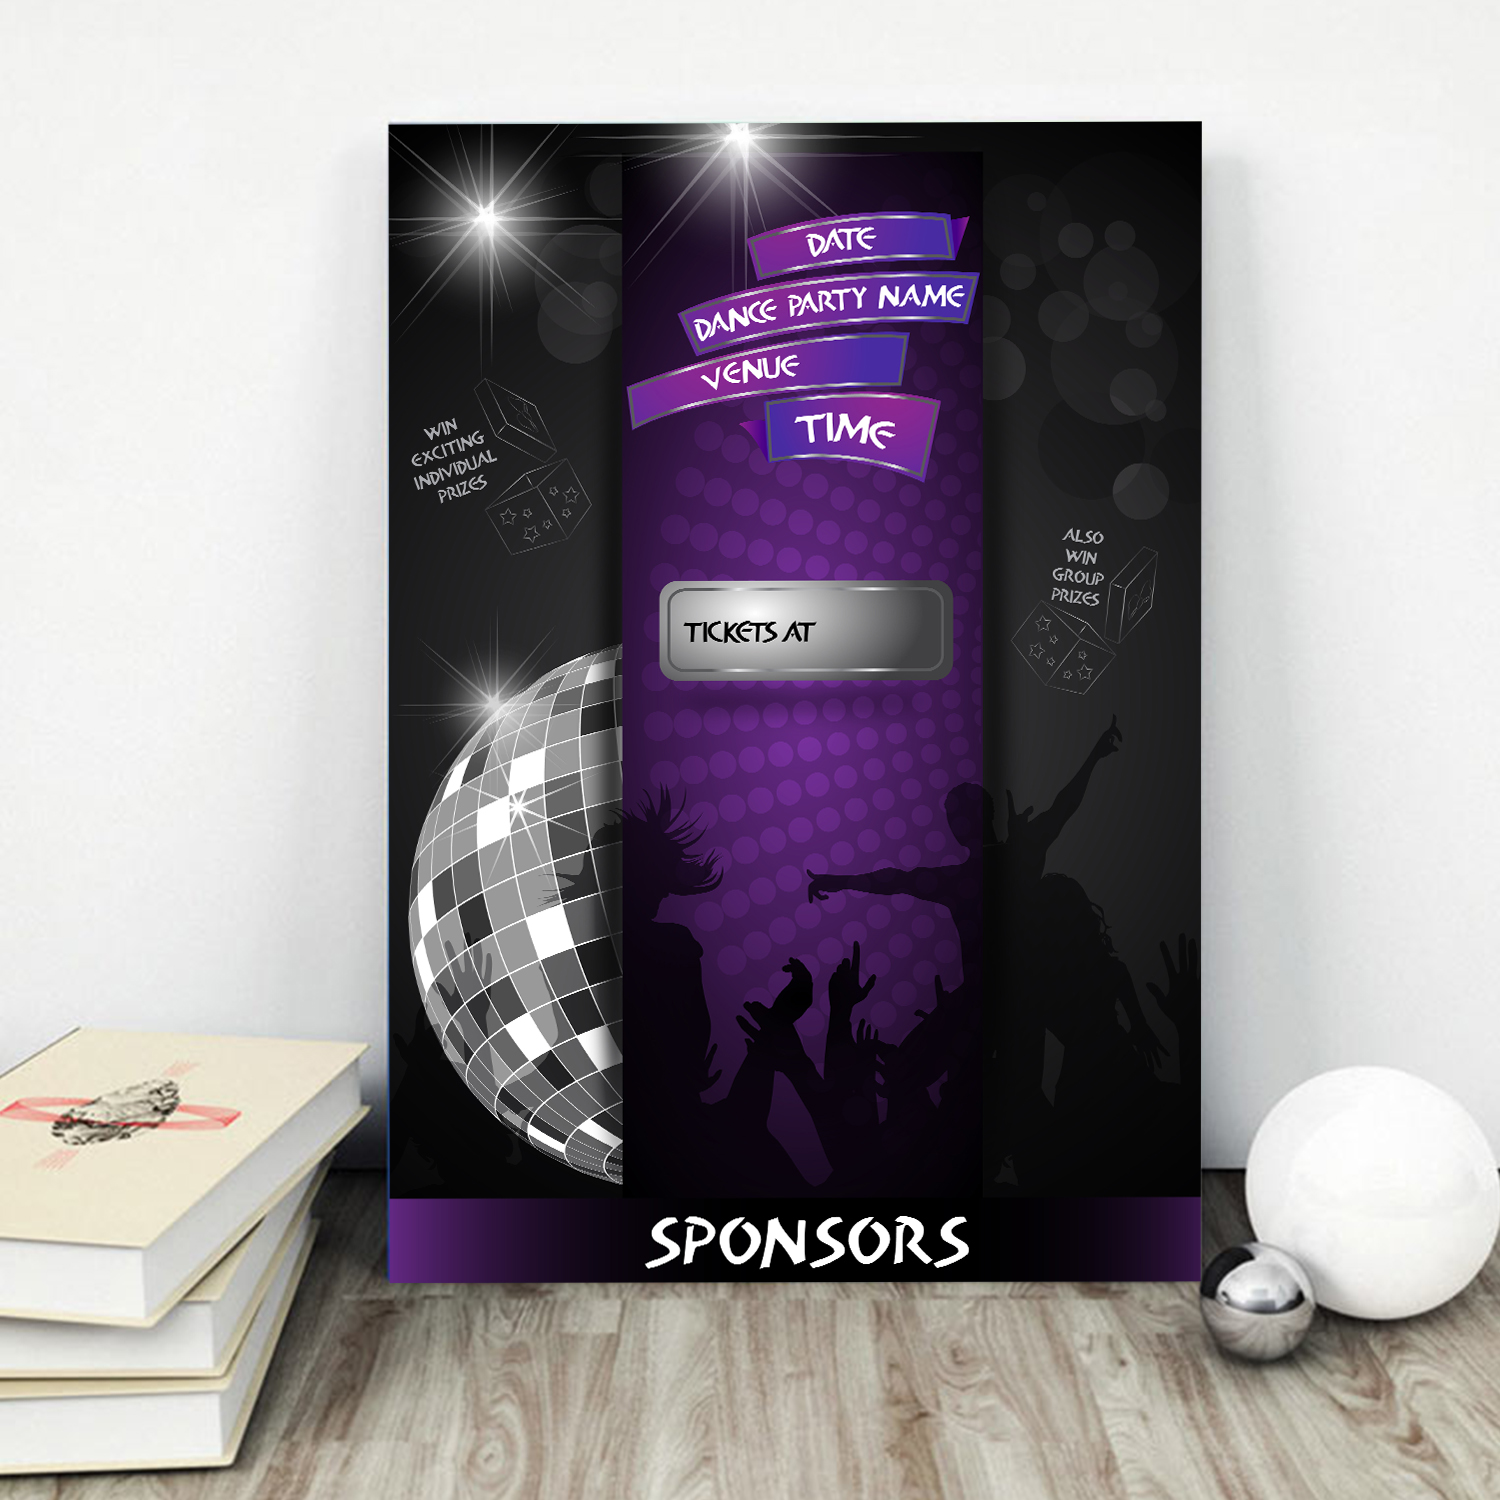 Poster design nz - Bold Modern Poster Design For Company In New Zealand Design 12024607